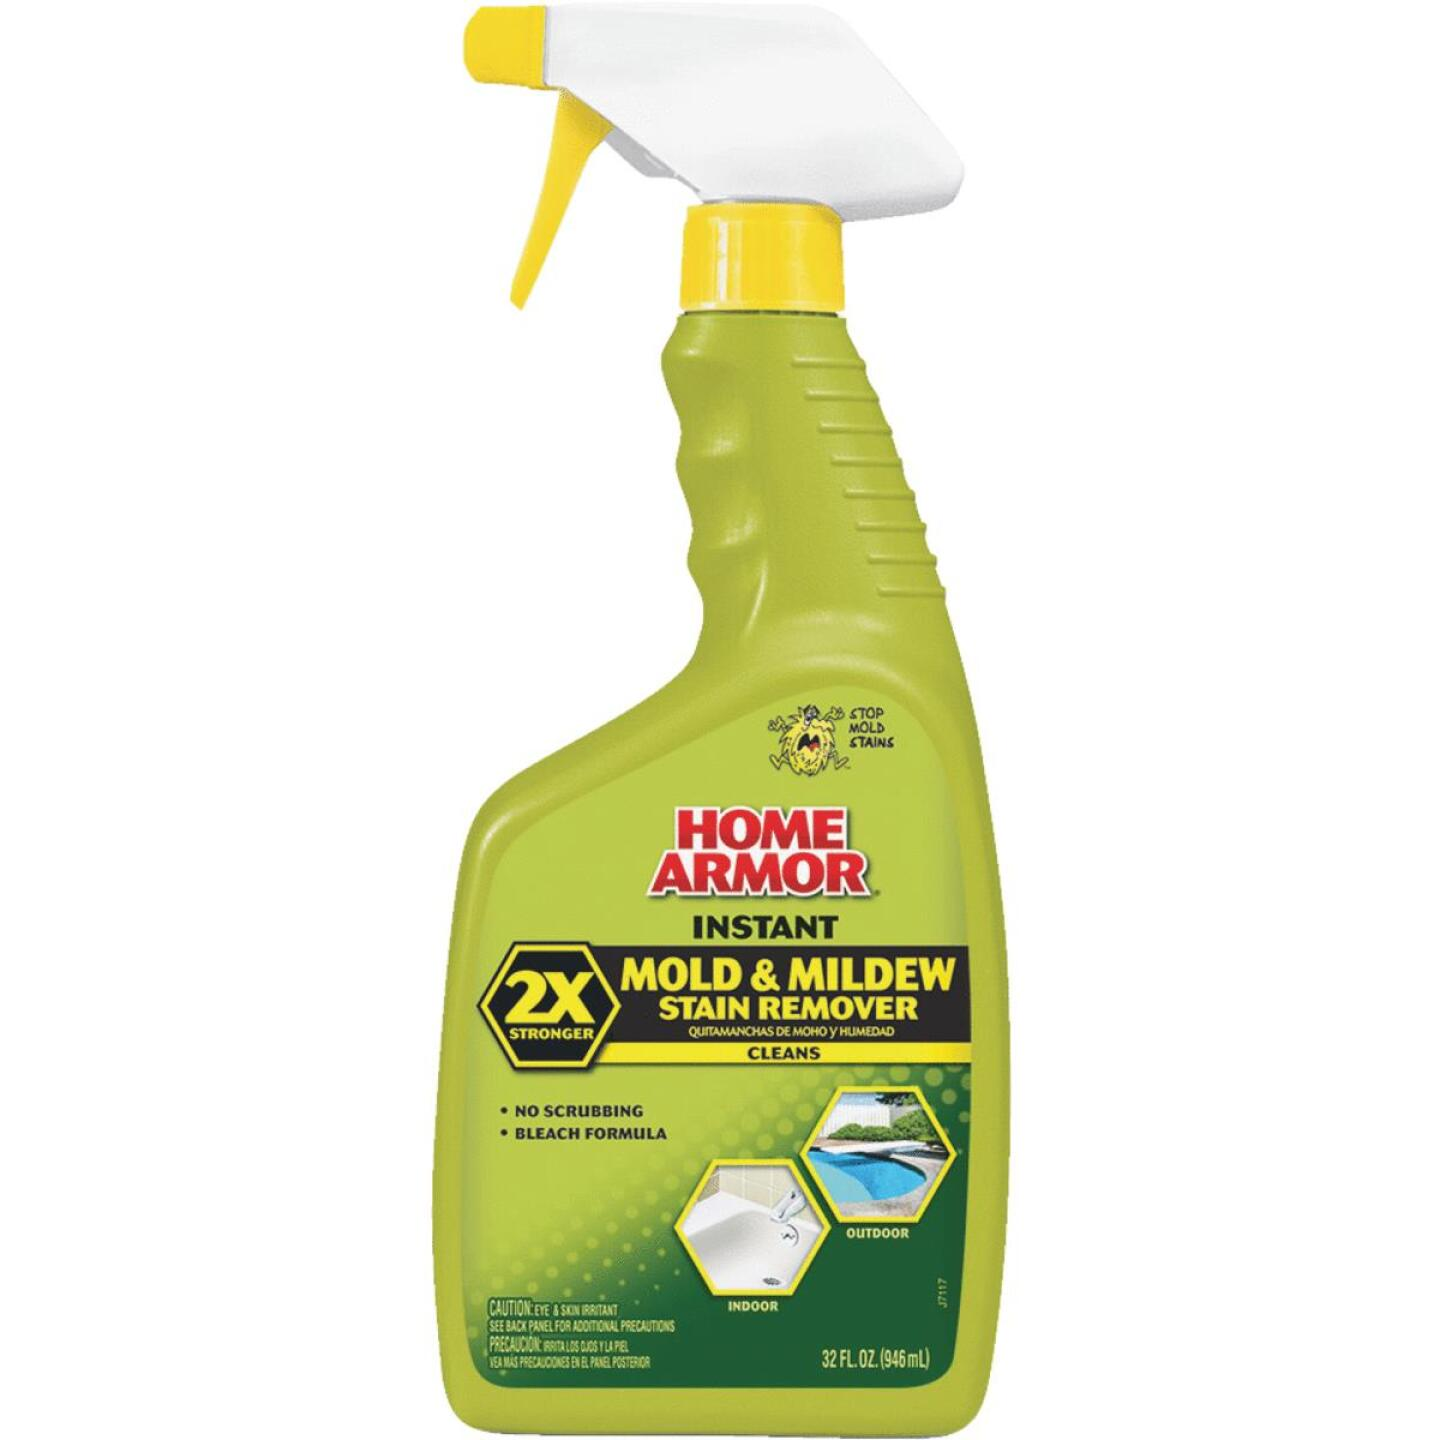 Home Armor 32 Oz. Instant Mold & Mildew Cleaner Image 1